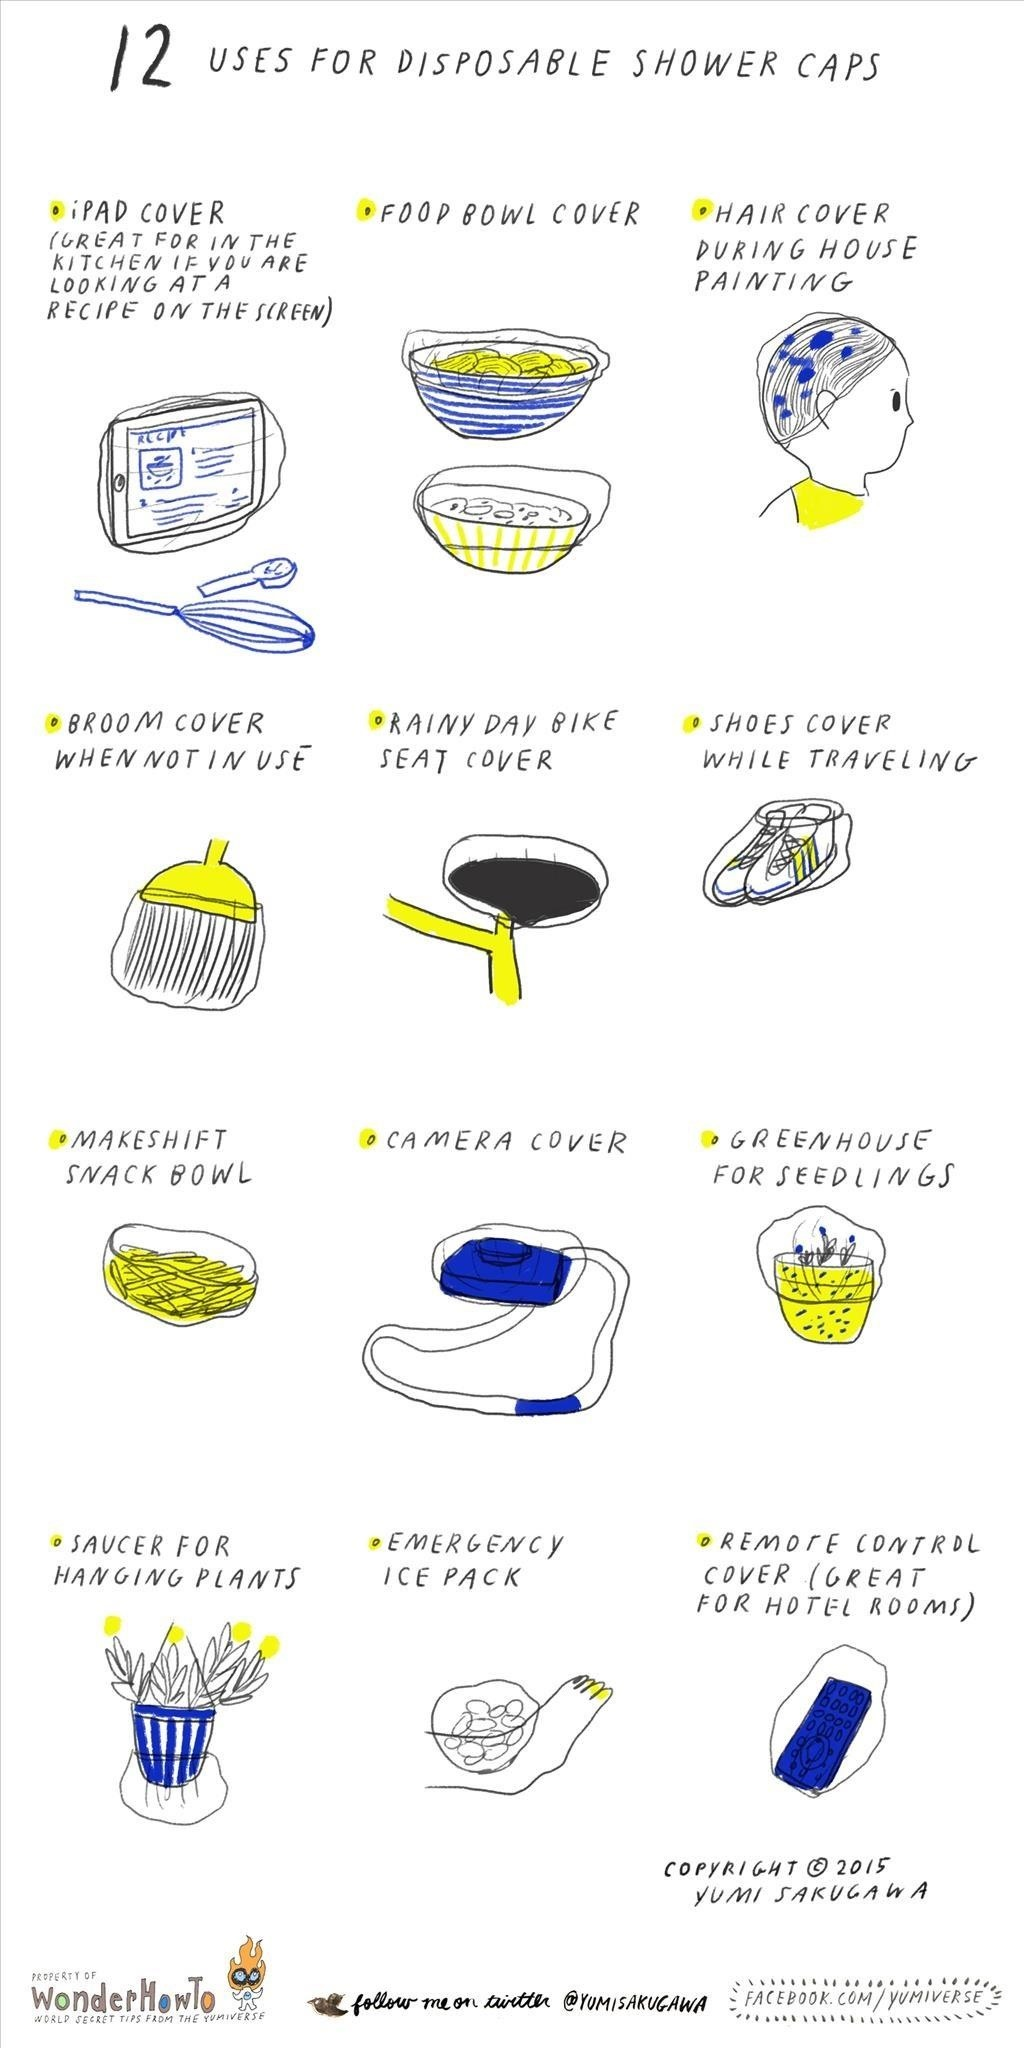 12 Non-Shower Uses for Disposable Shower Caps